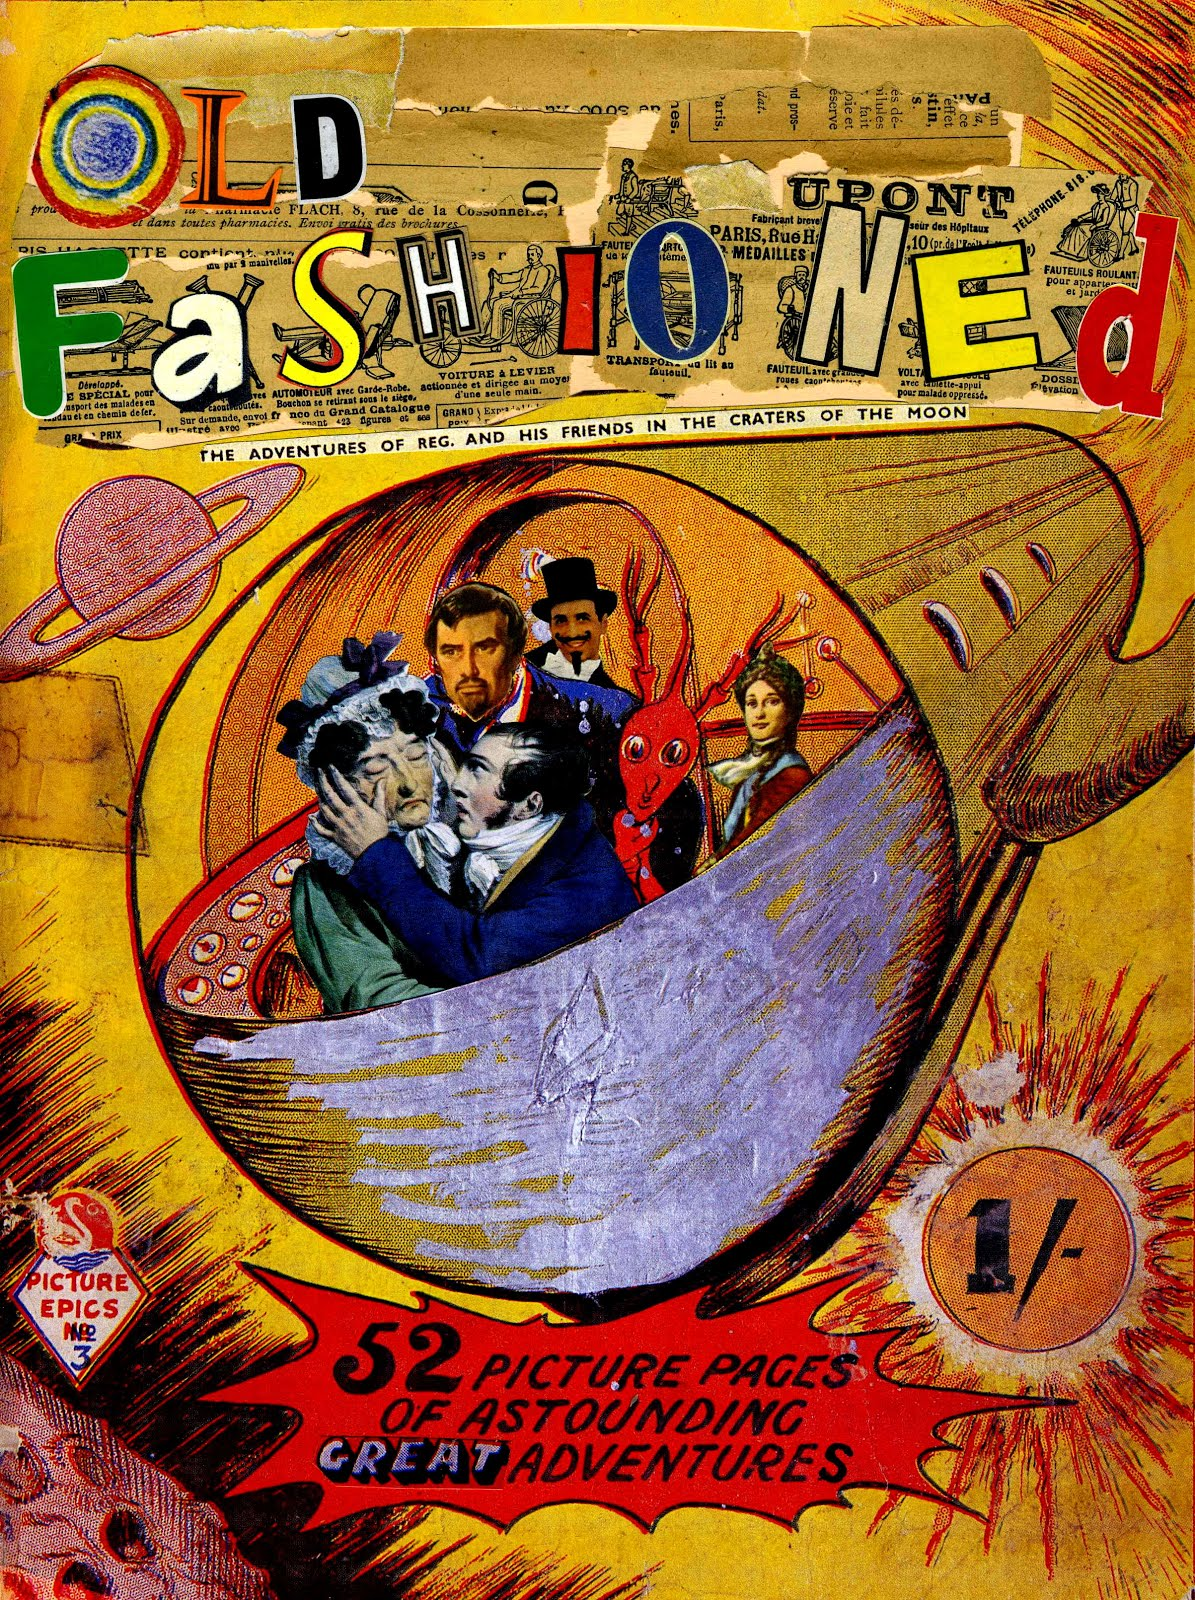 Old Fashioned Book Cover : Old fashioned comic book cover